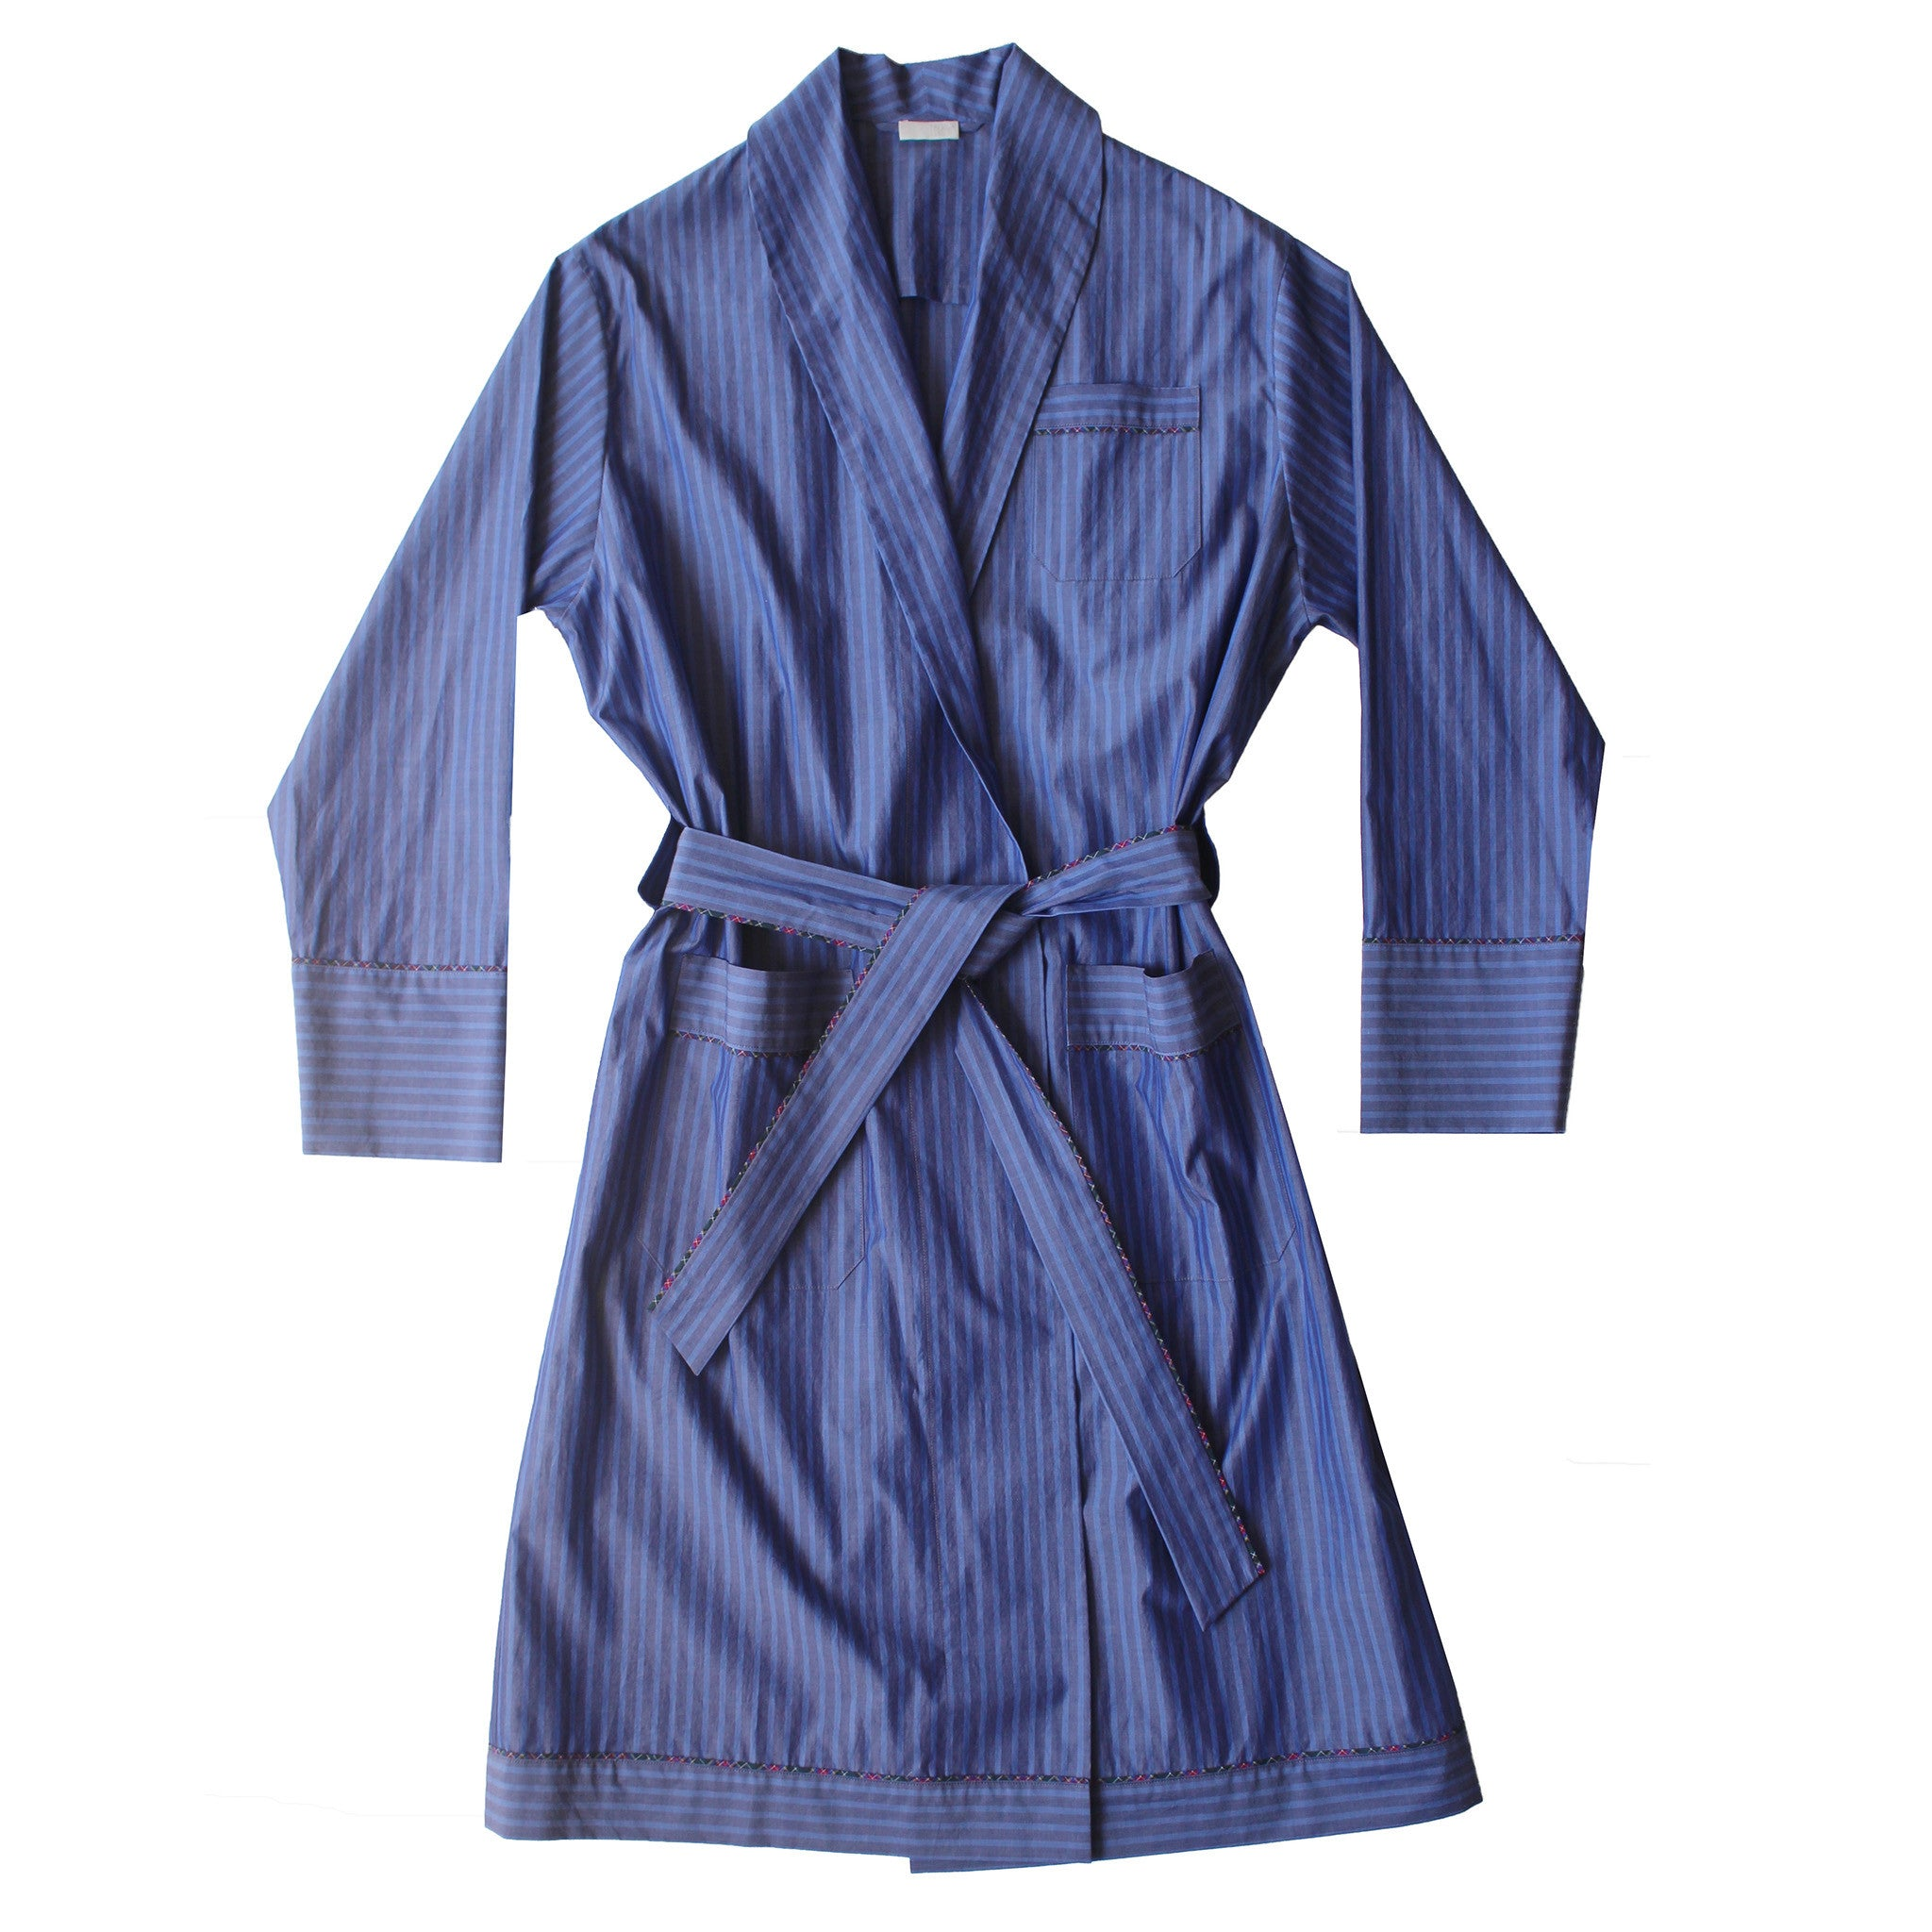 Janus Robe in Blue and Grey Stripe Italian Cotton